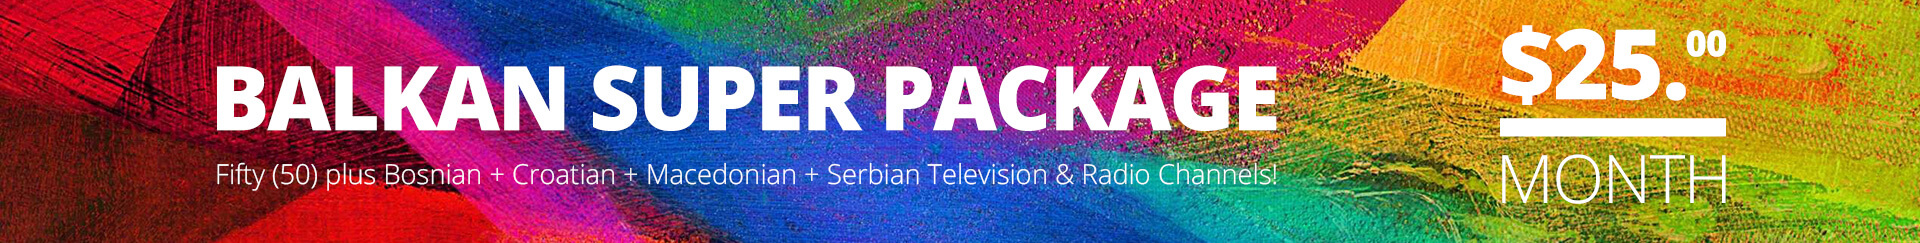 iON Balkan TV Packages